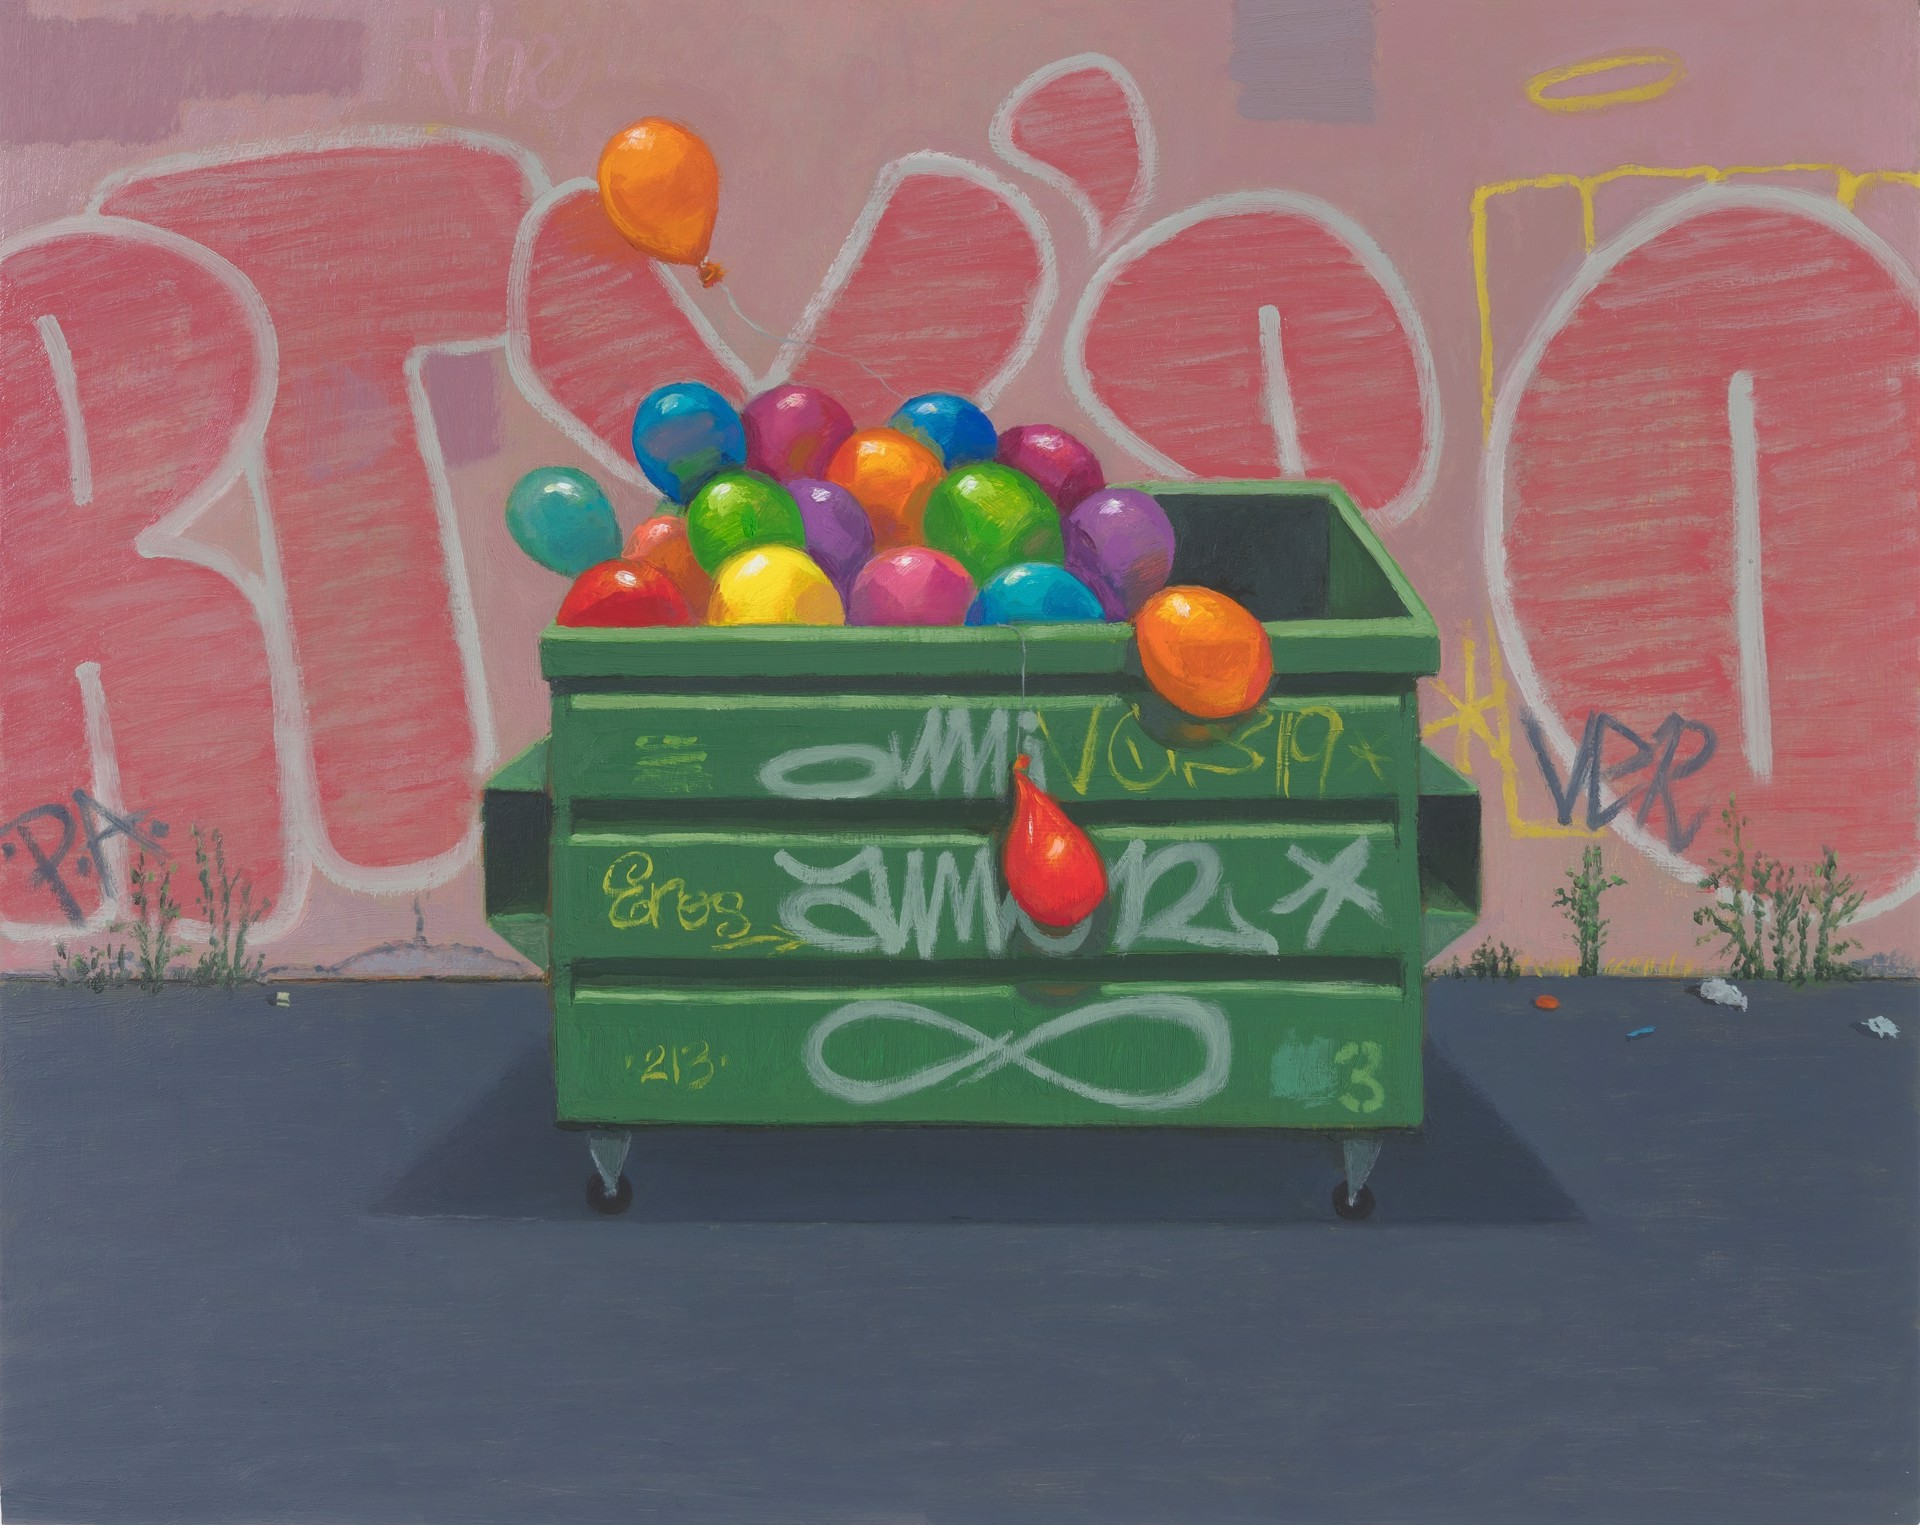 Balloon Dumpster (The Party's Over) by Vonn Cummings Sumner